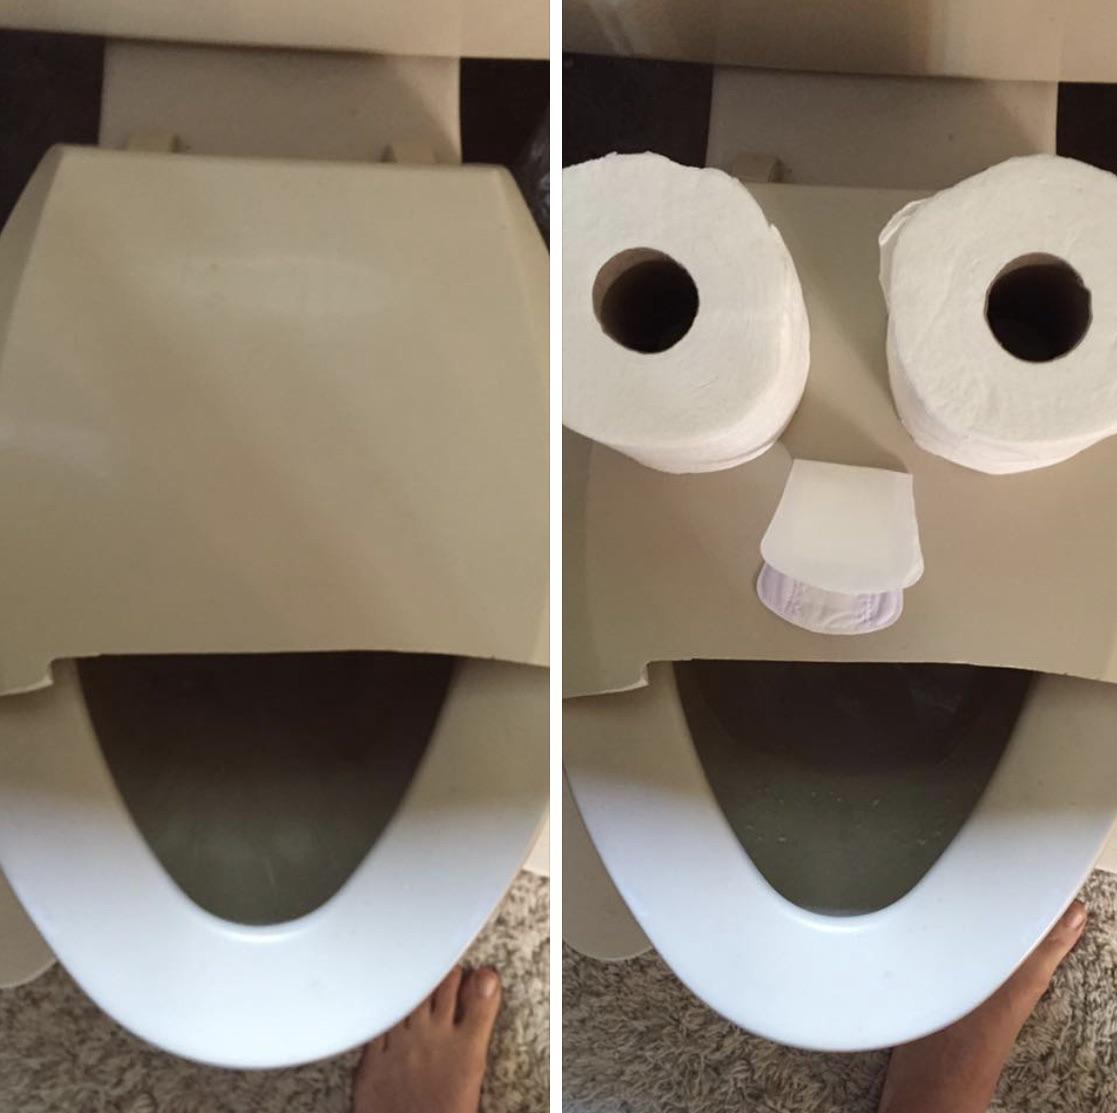 I broke the toilet seat. This is how I broke it to my wife